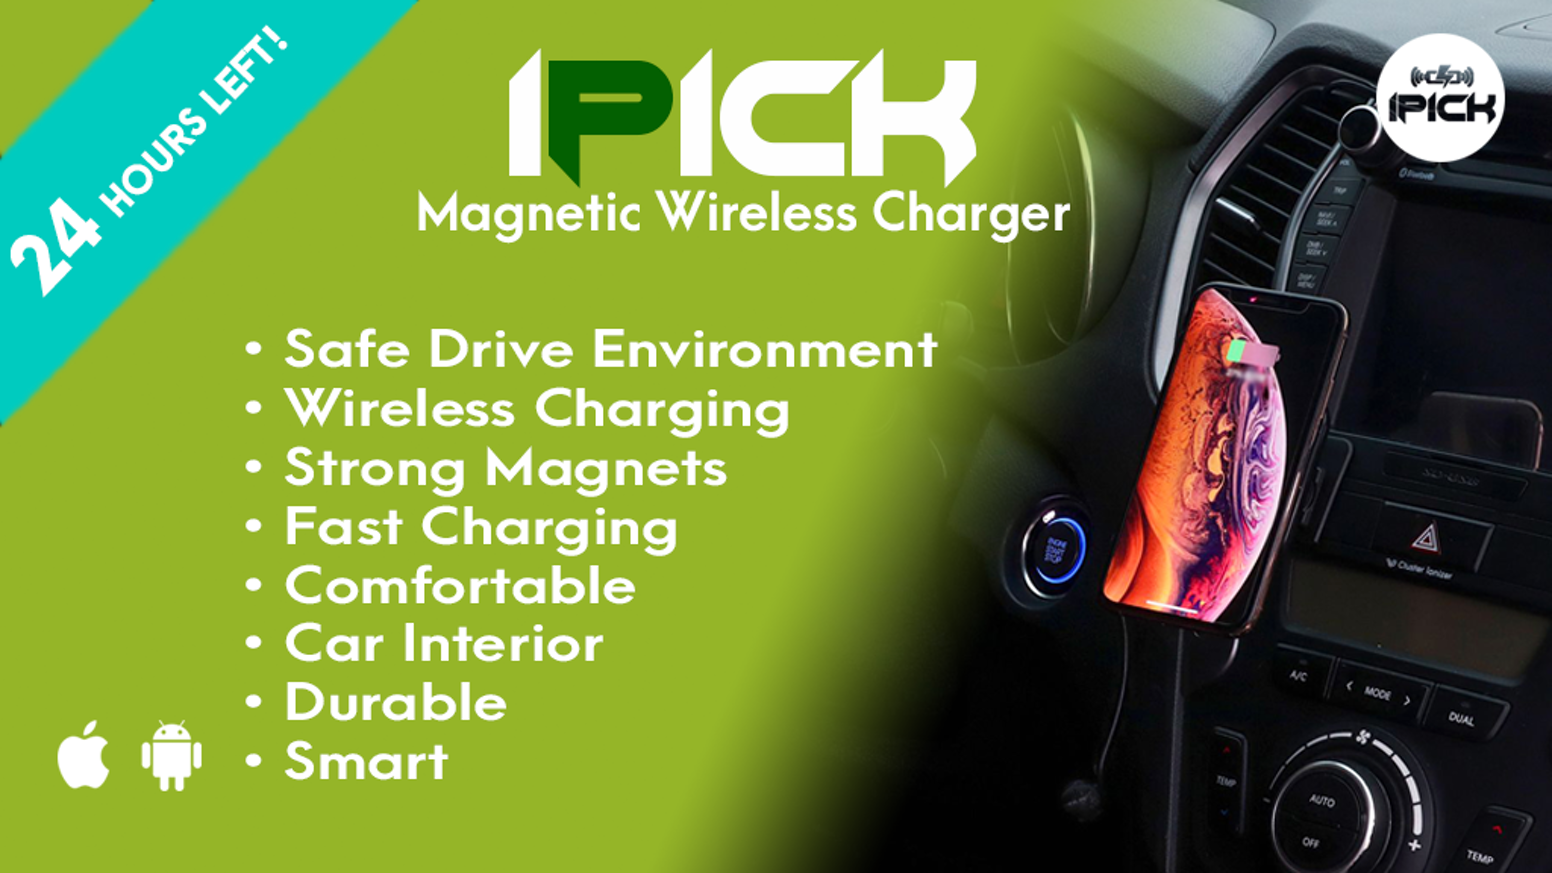 Fast Wireless Charger, Strong Neodymium Magnets, Simple Design, Safe Driving, Car Interior Accessory, Phone Mount Holder, Pretty Plates